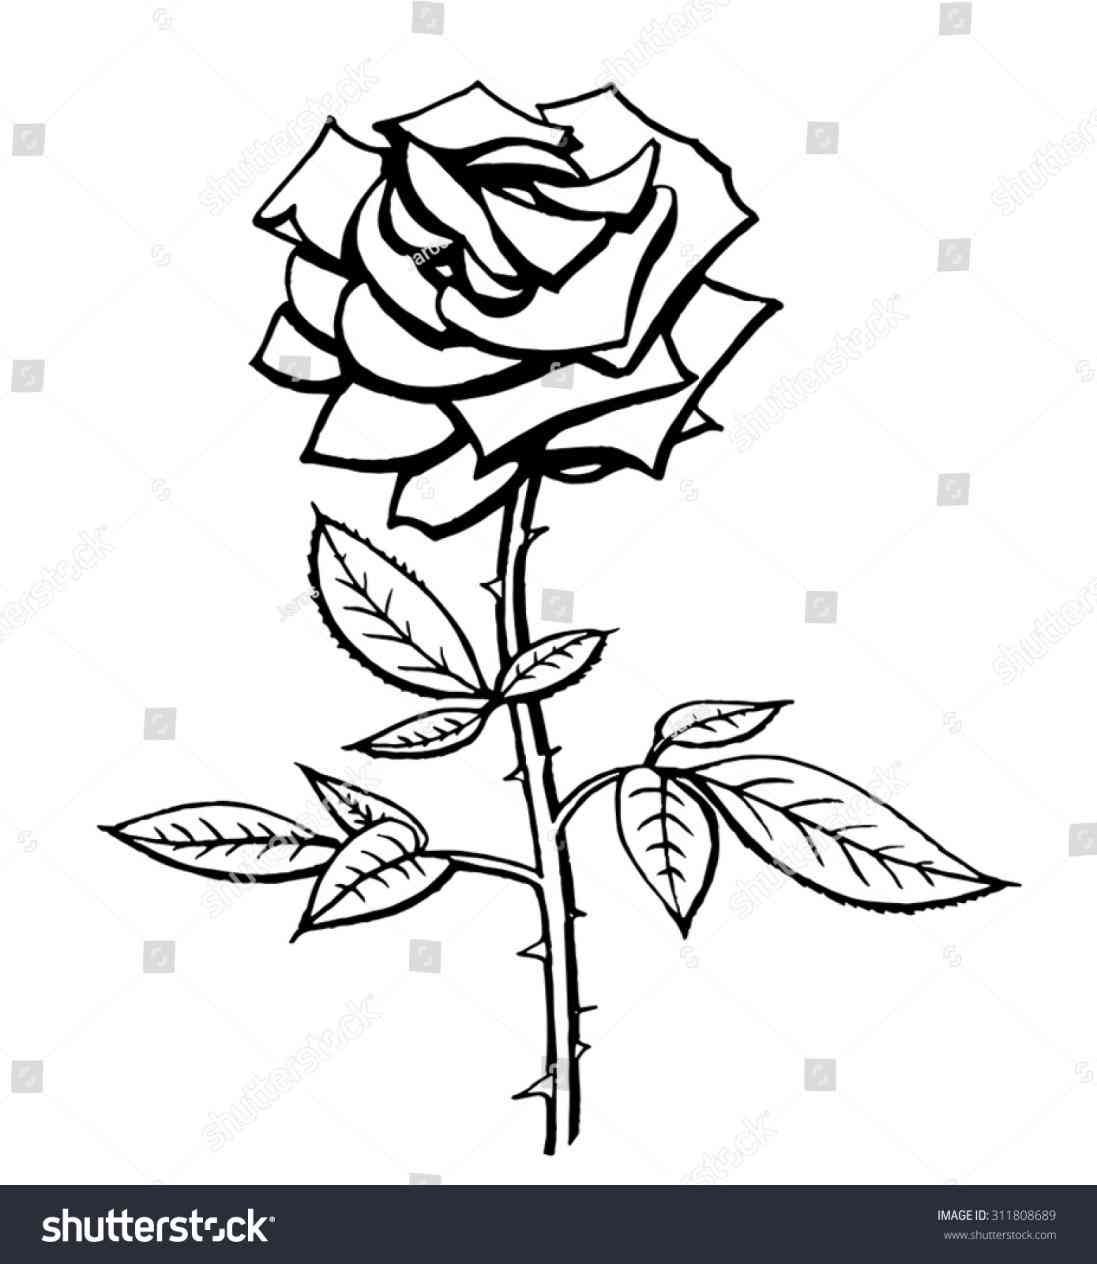 1097x1264 Of With Excellent Rose Stem Vector Black And White Stock Vector